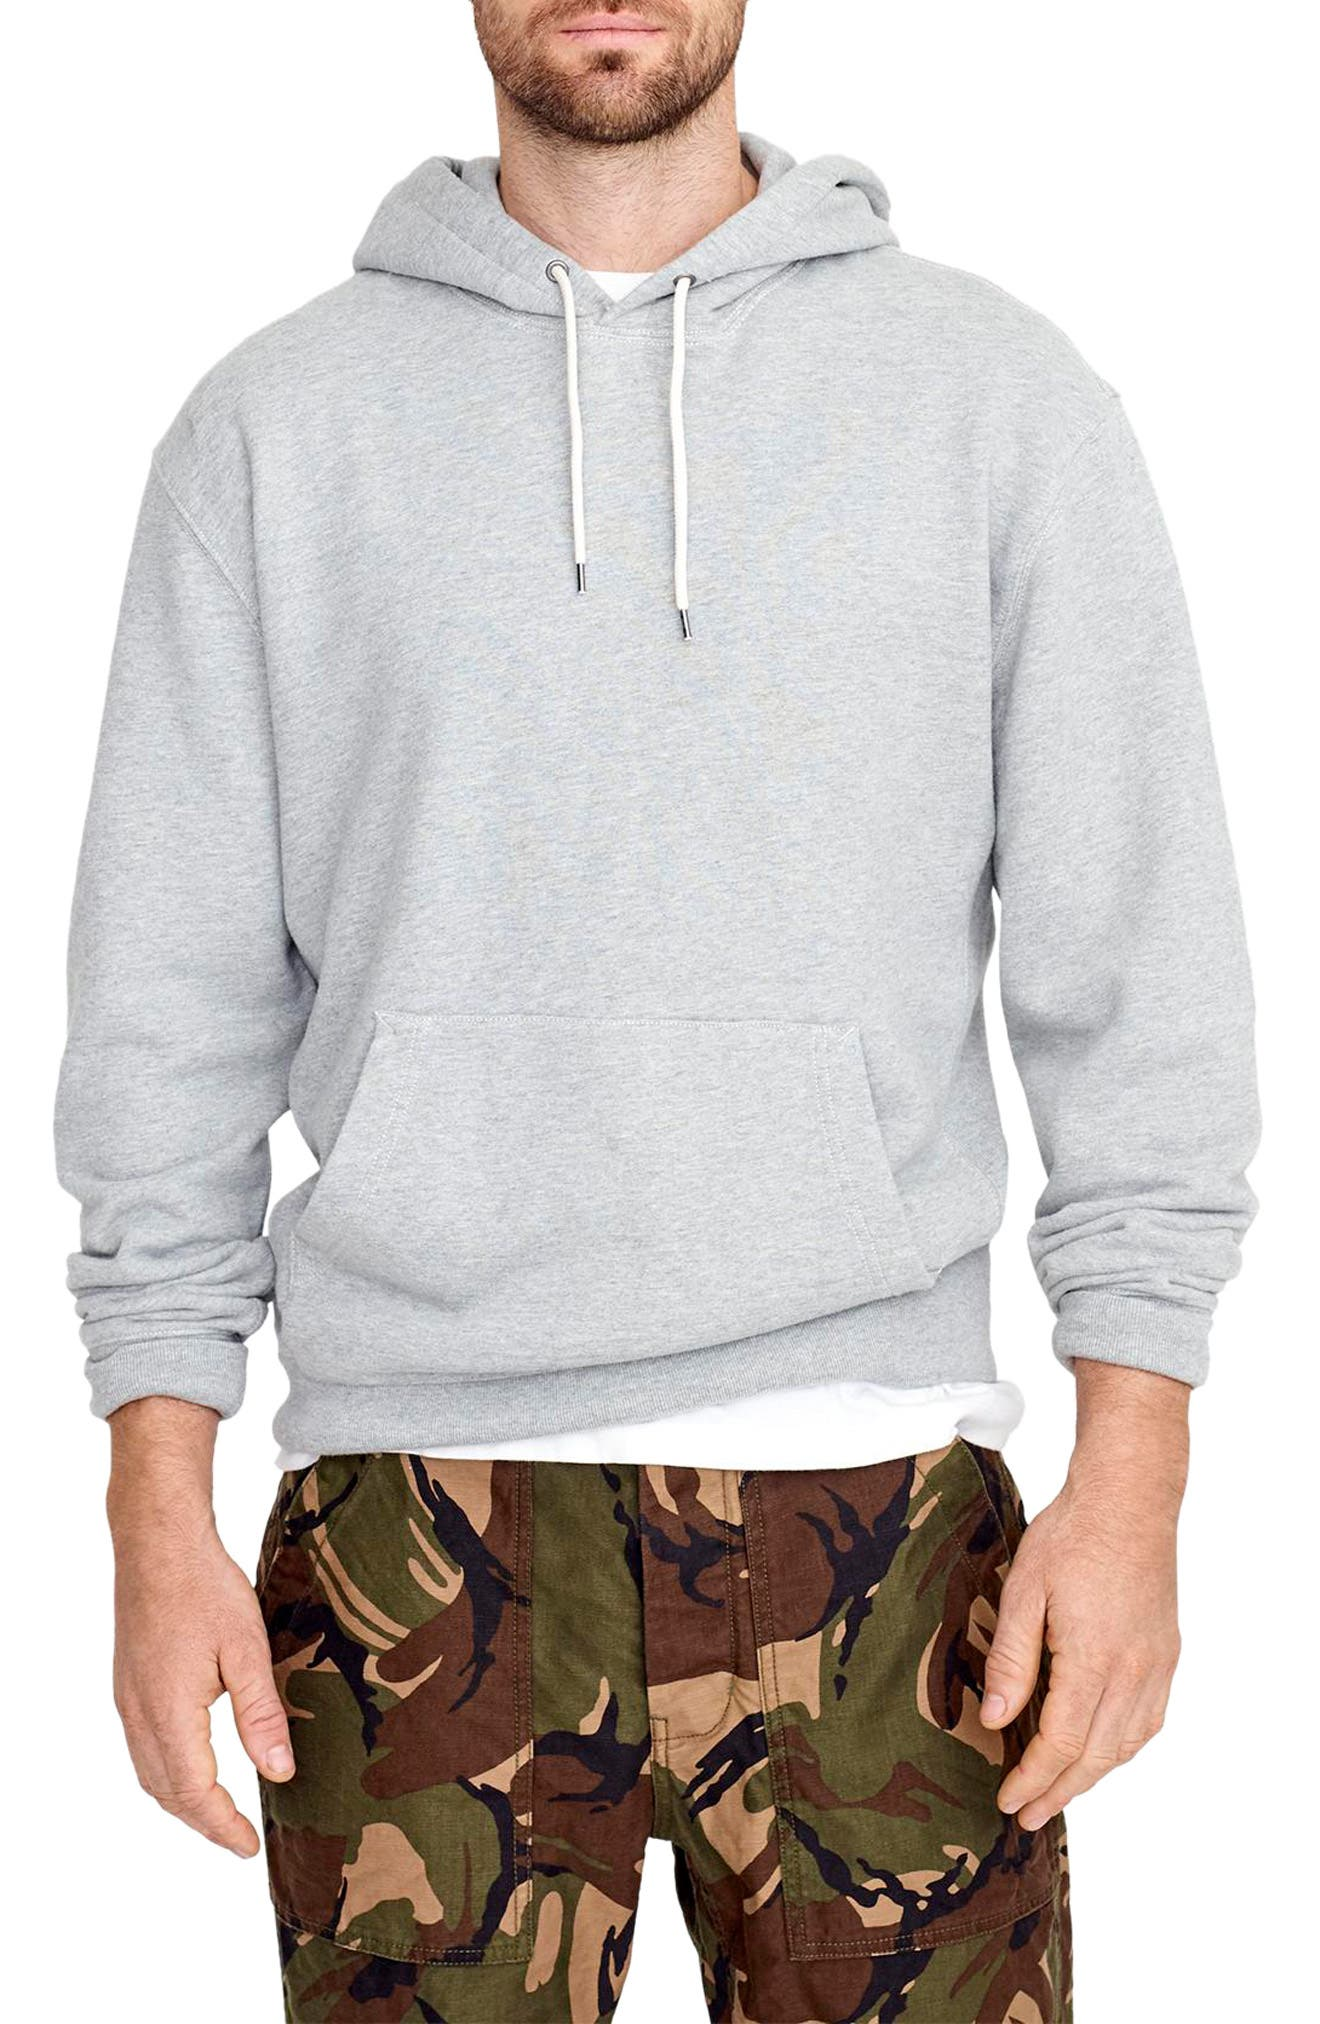 French Terry Pullover Hoodie,                         Main,                         color, 021